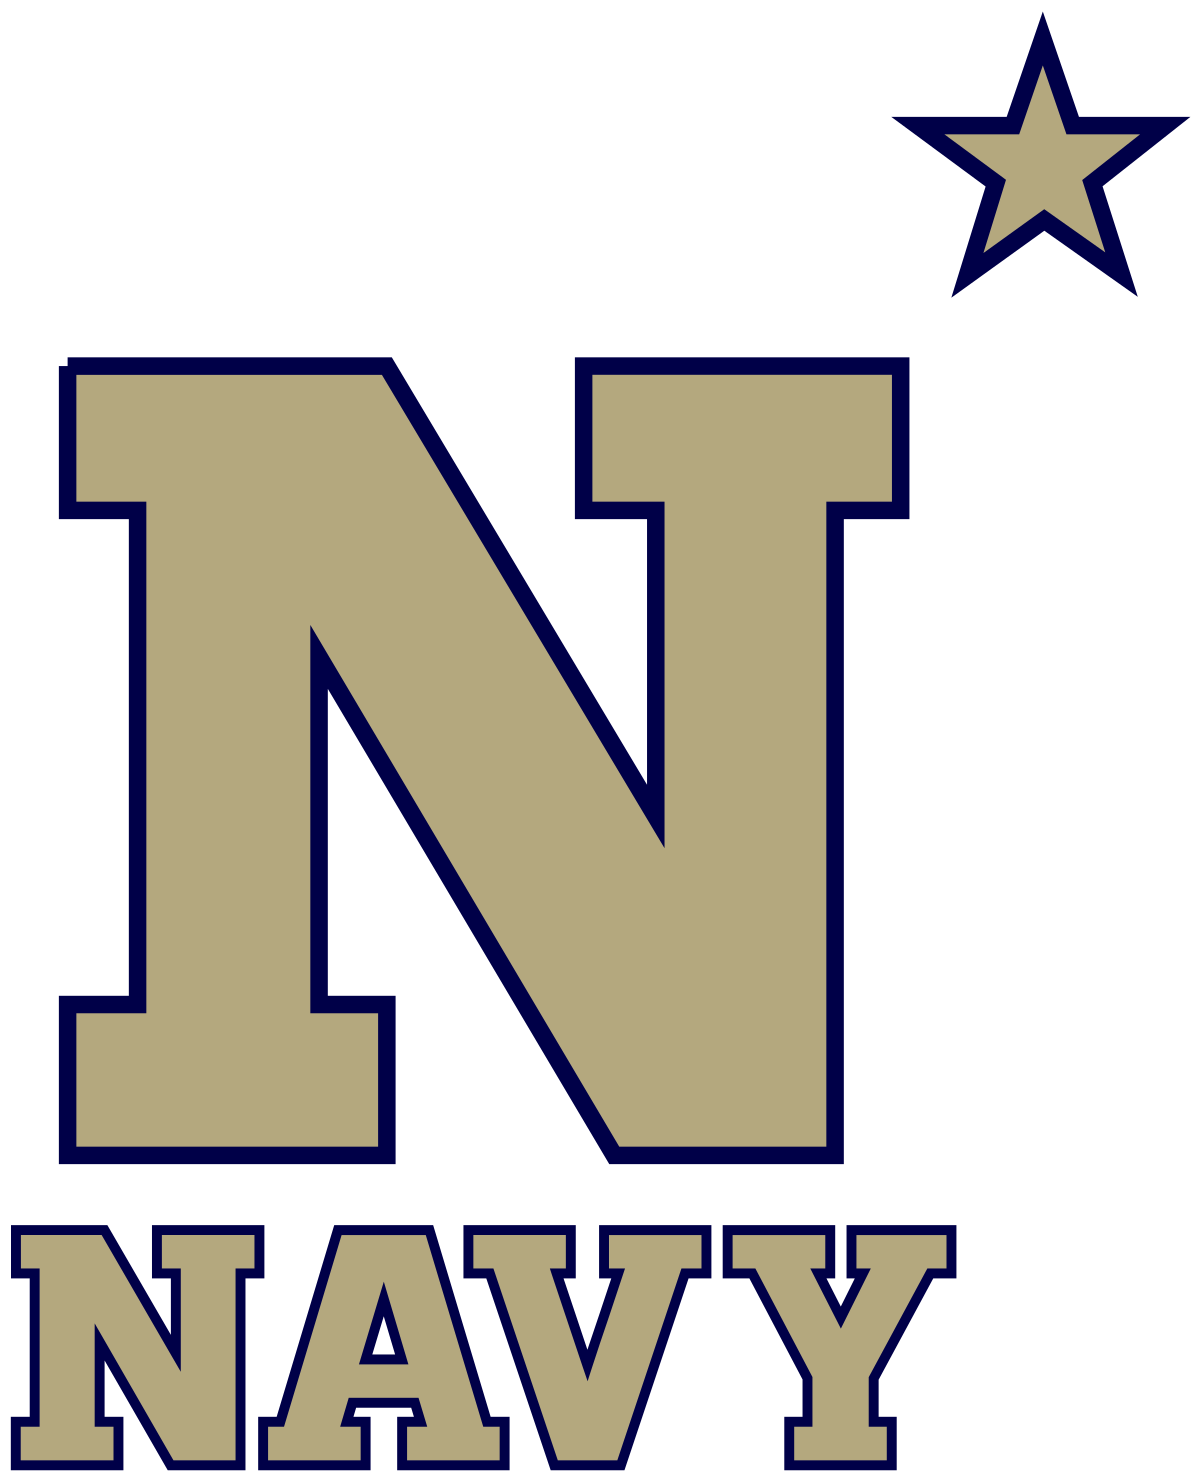 Naval star clipart svg free stock Navy Logos svg free stock